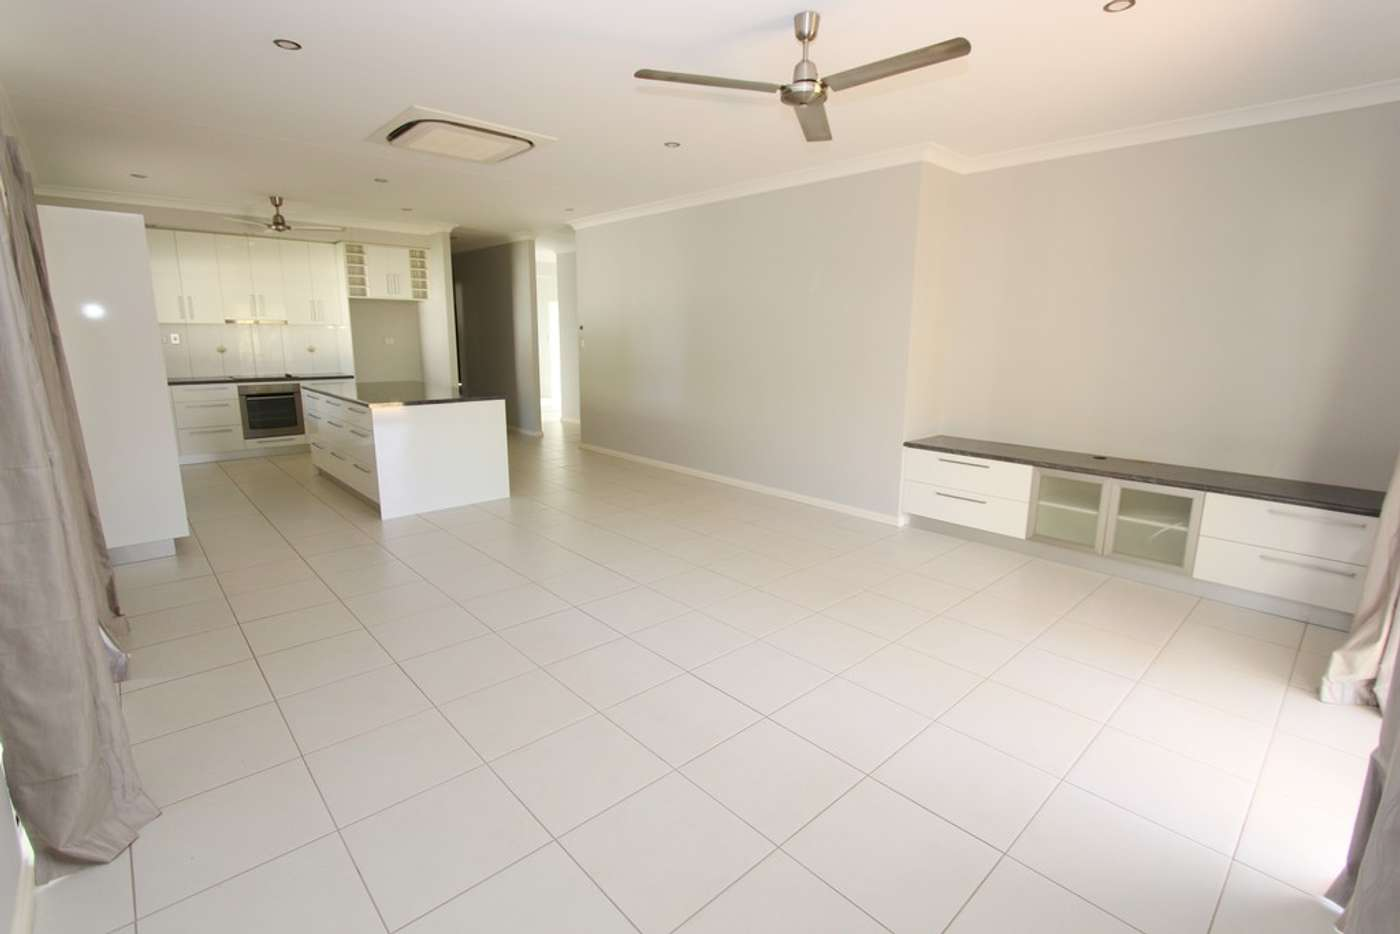 Sixth view of Homely house listing, 7 Rutt Crt, Katherine NT 850